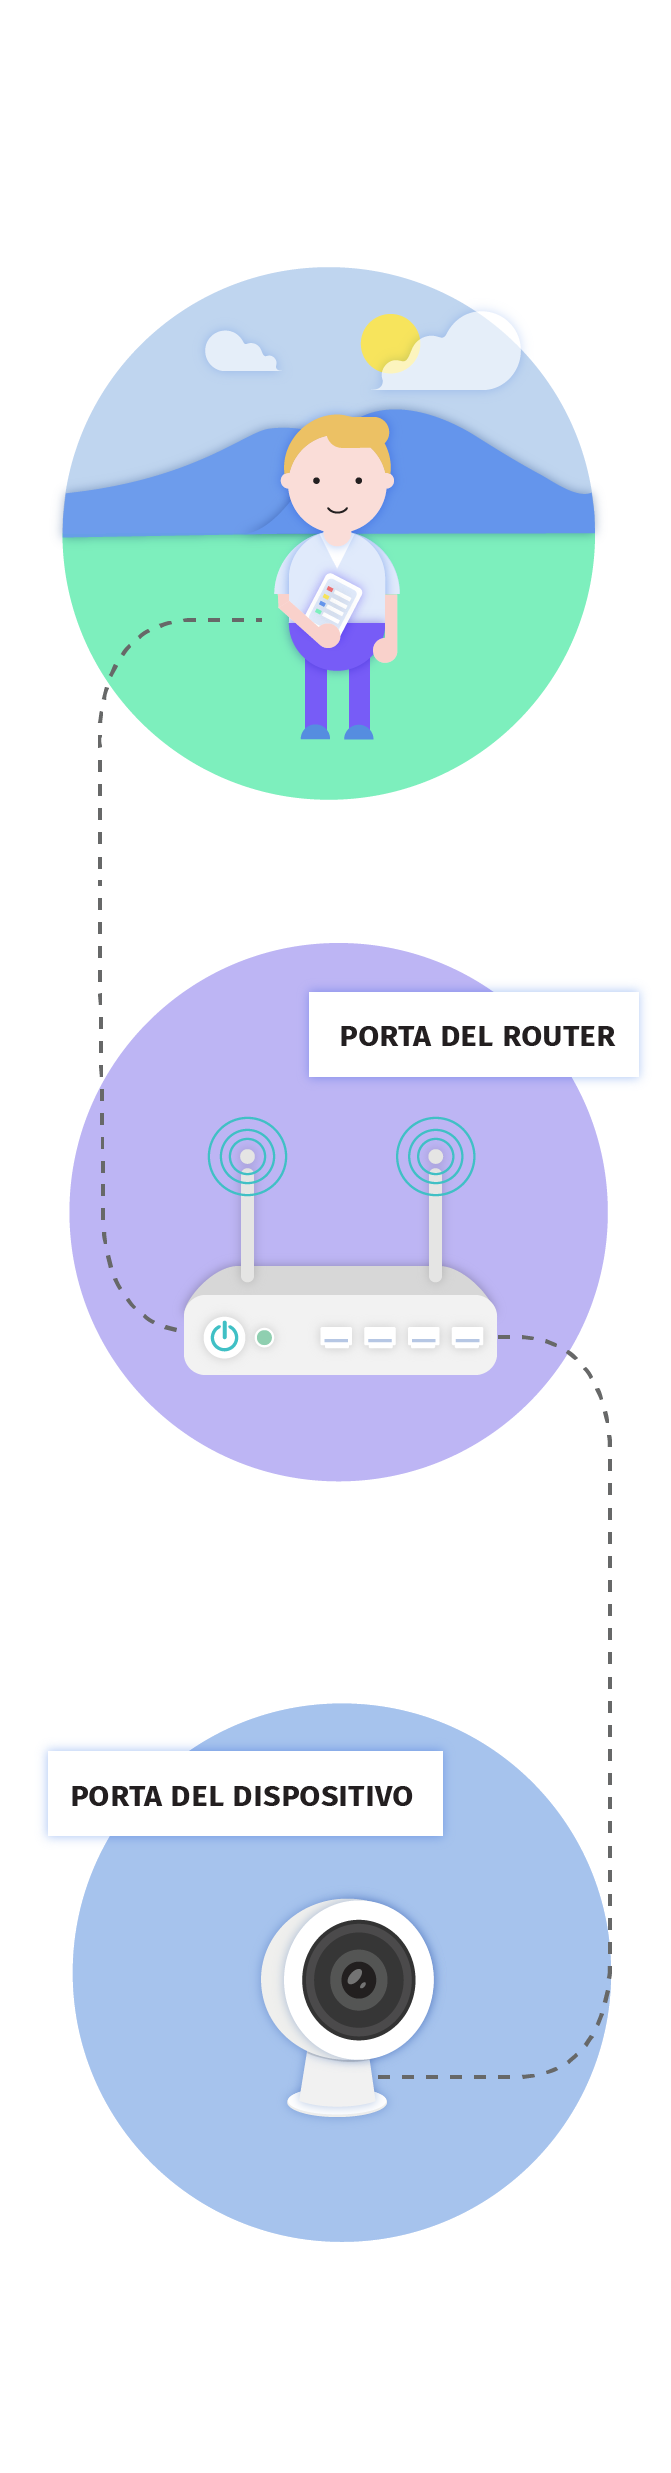 Port Forwarding - Documentazione - dynDNS.it - DNS dinamico gratuito - Free dyndns